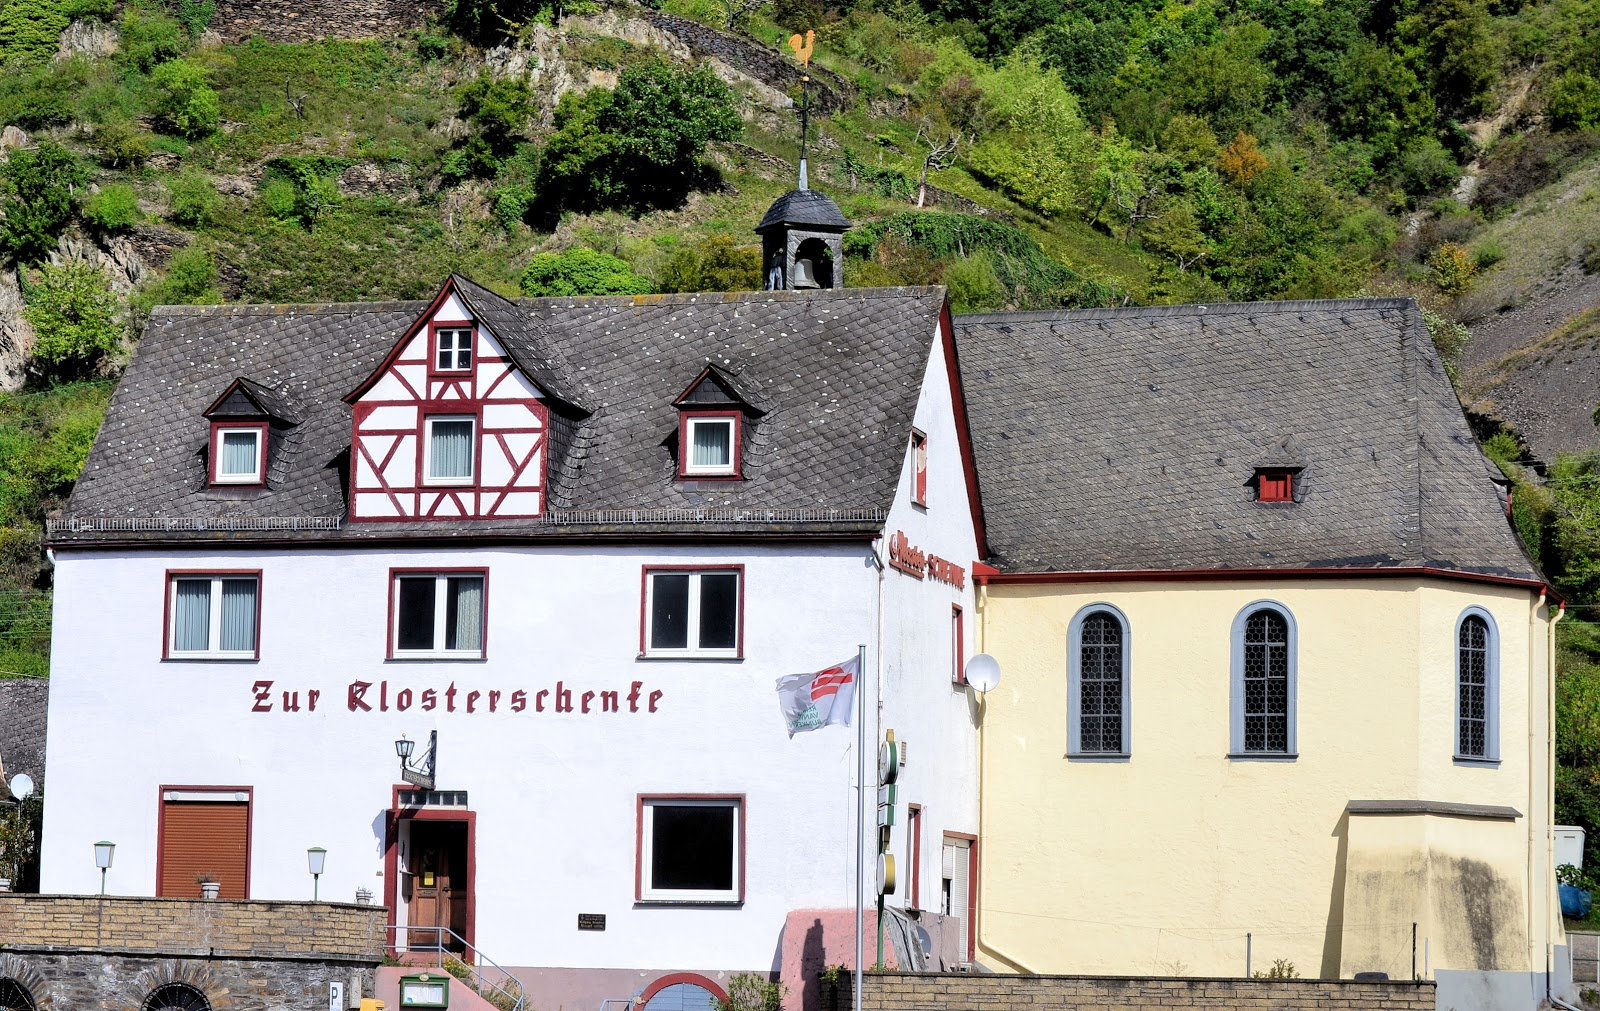 Zur Klosterschenke combines worship with drinking in one stop. Note the rooster at the top of the cupola indicating a Protestant Church.